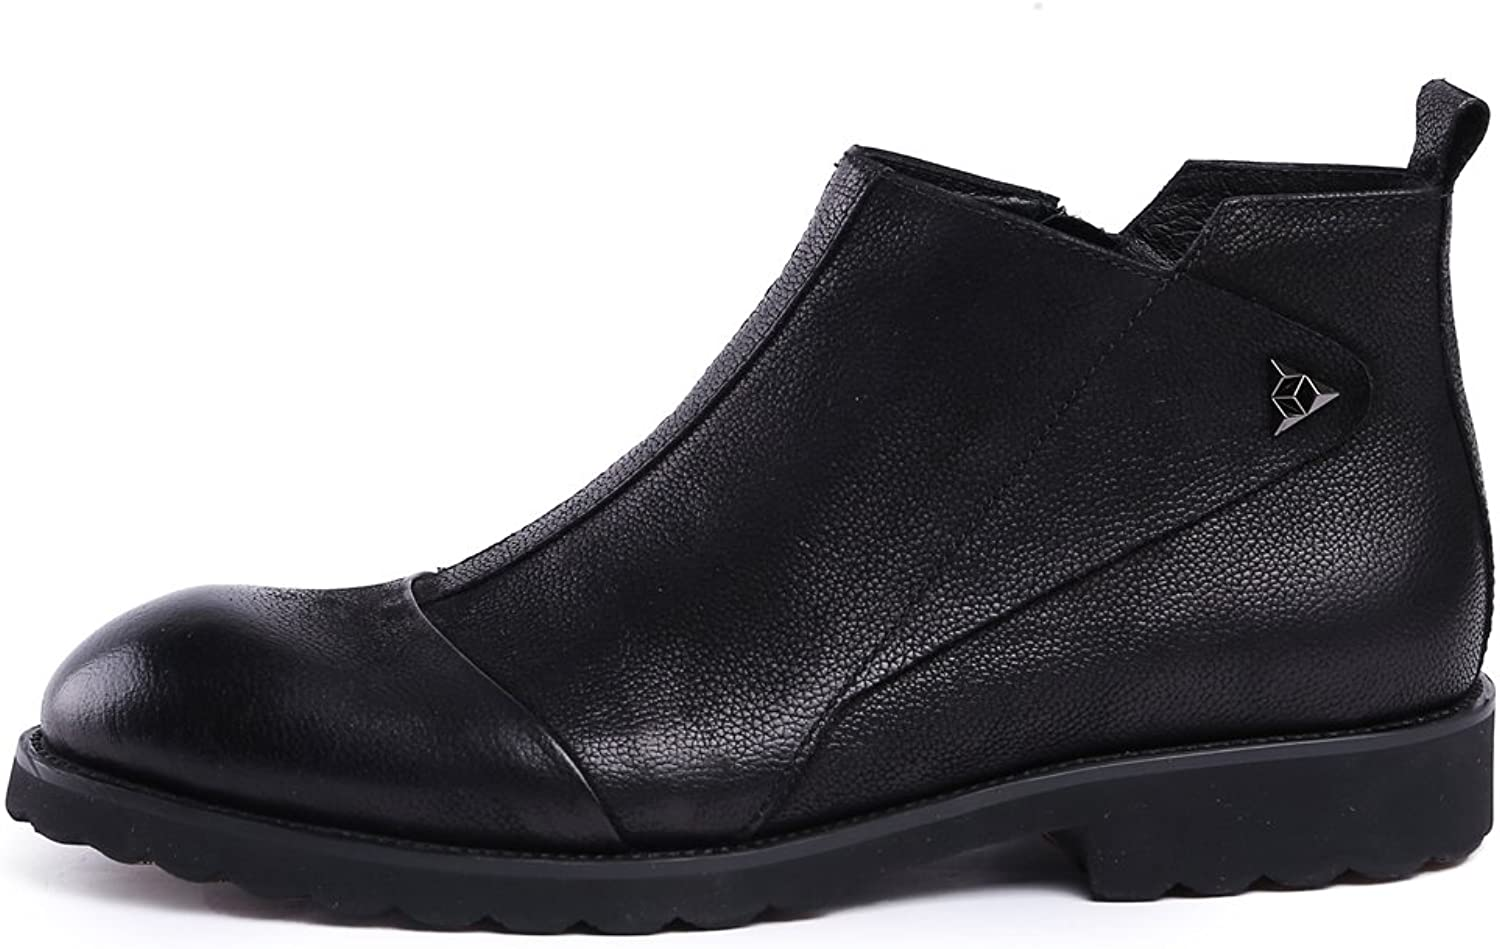 MedzRE Men's Stylish Leather Dress Oxford Short Ankle Boots